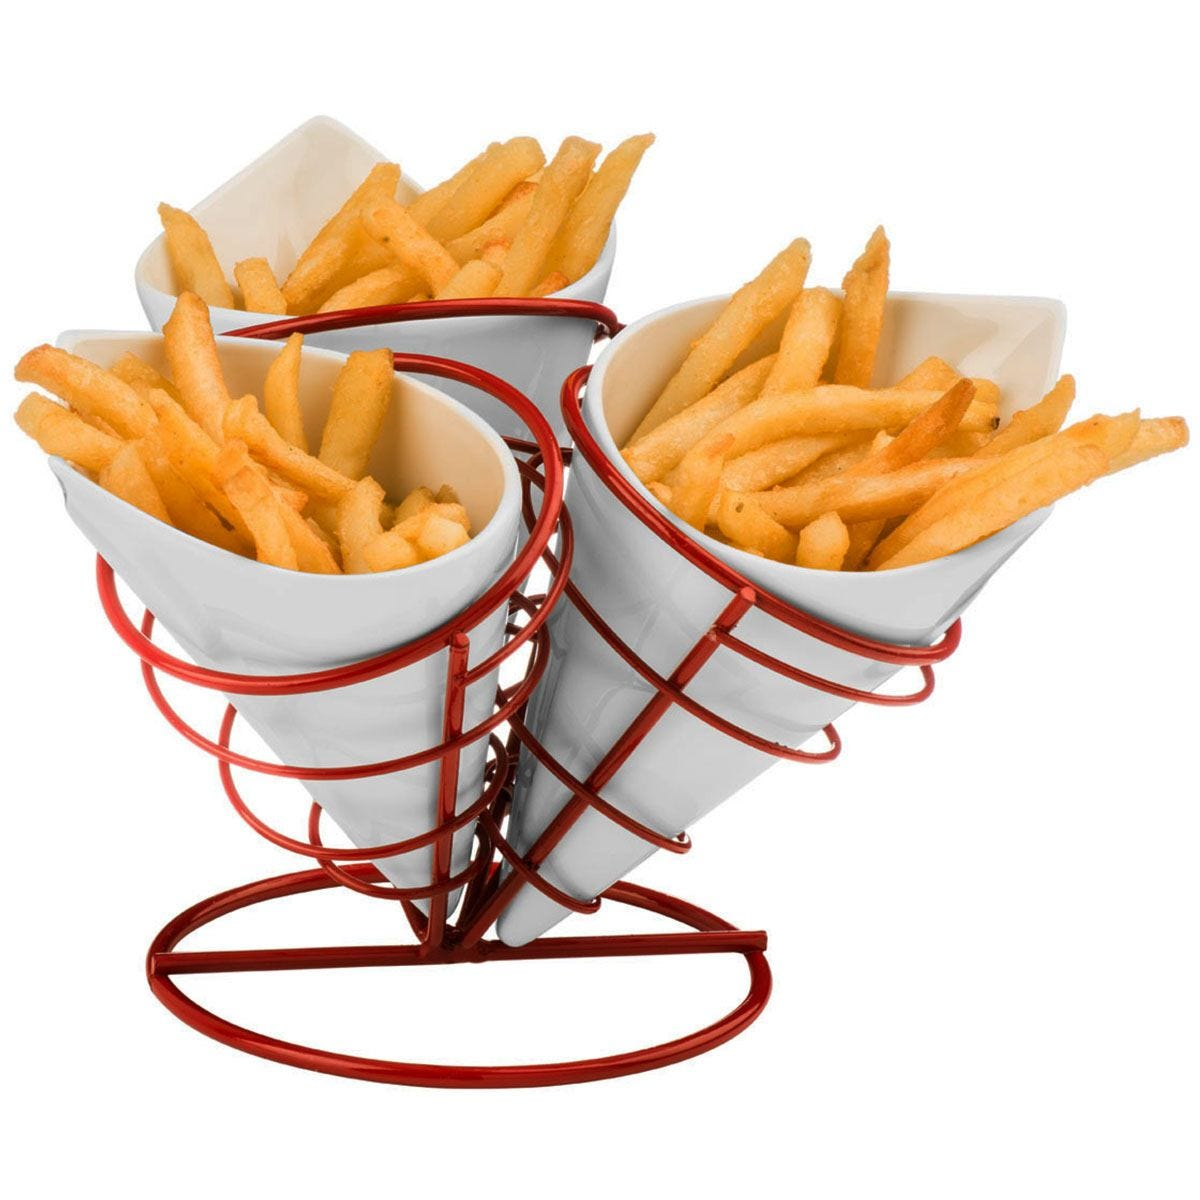 Premier Housewares 3-Cone French Fries Stand Set - Red